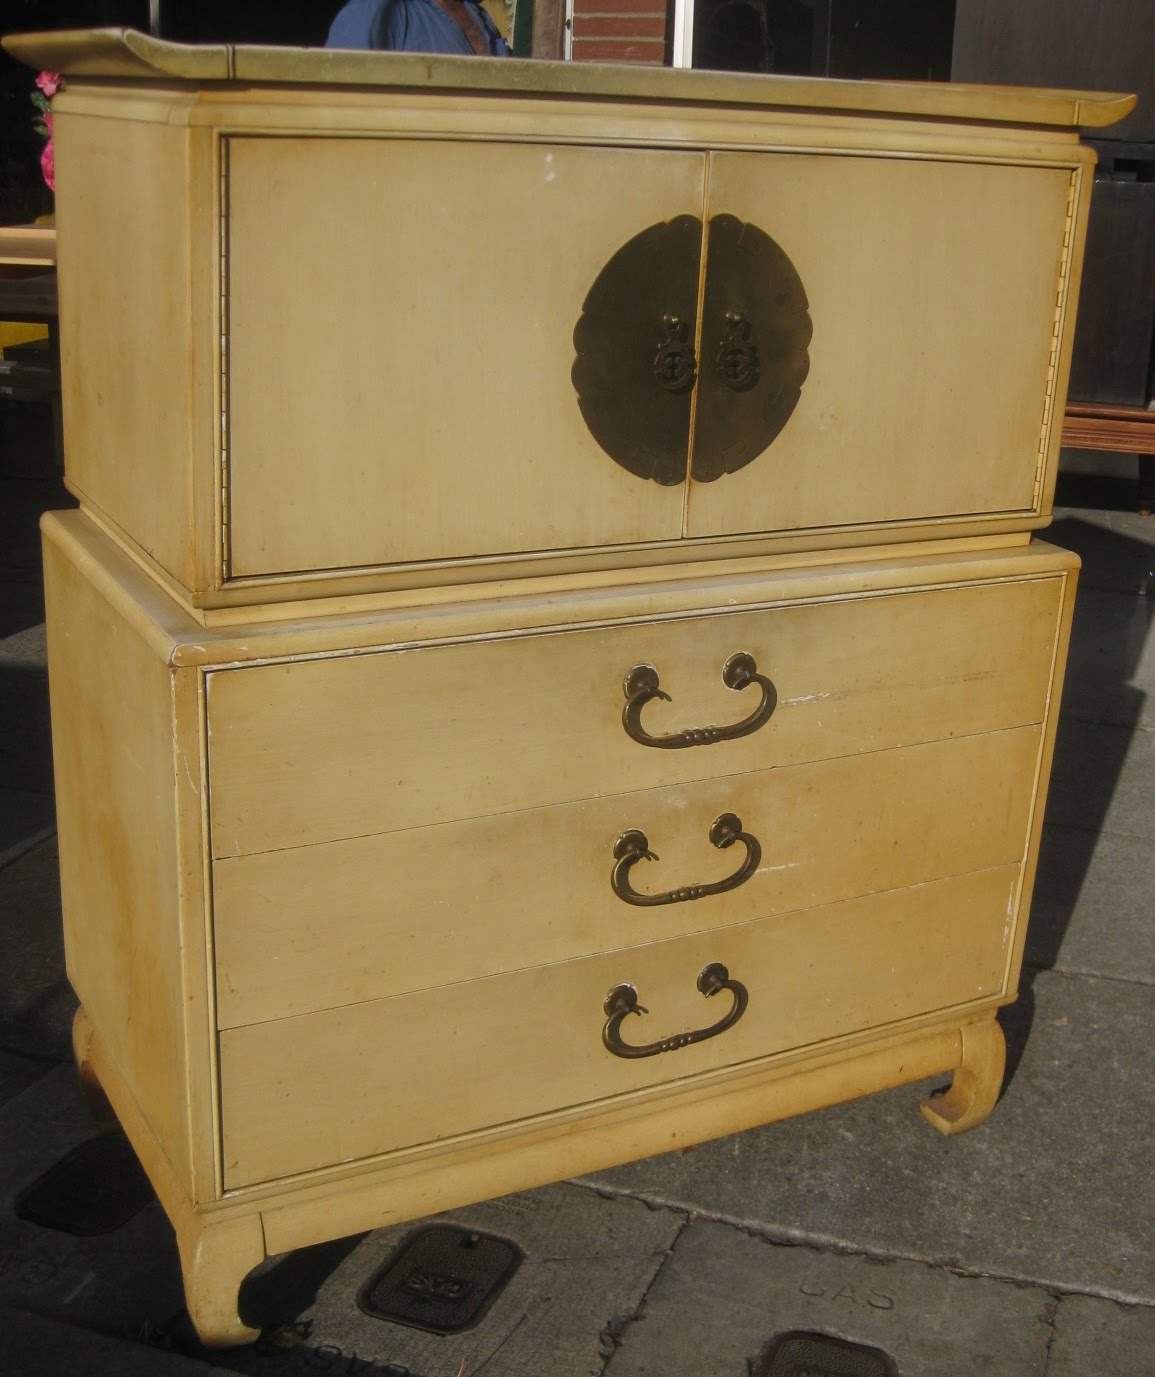 #8D723E UHURU FURNITURE & COLLECTIBLES: SOLD Asian Chest Of Drawers   Night  with 1155x1377 px of Highly Rated Asian Dresser Furniture 13771155 picture/photo @ avoidforclosure.info